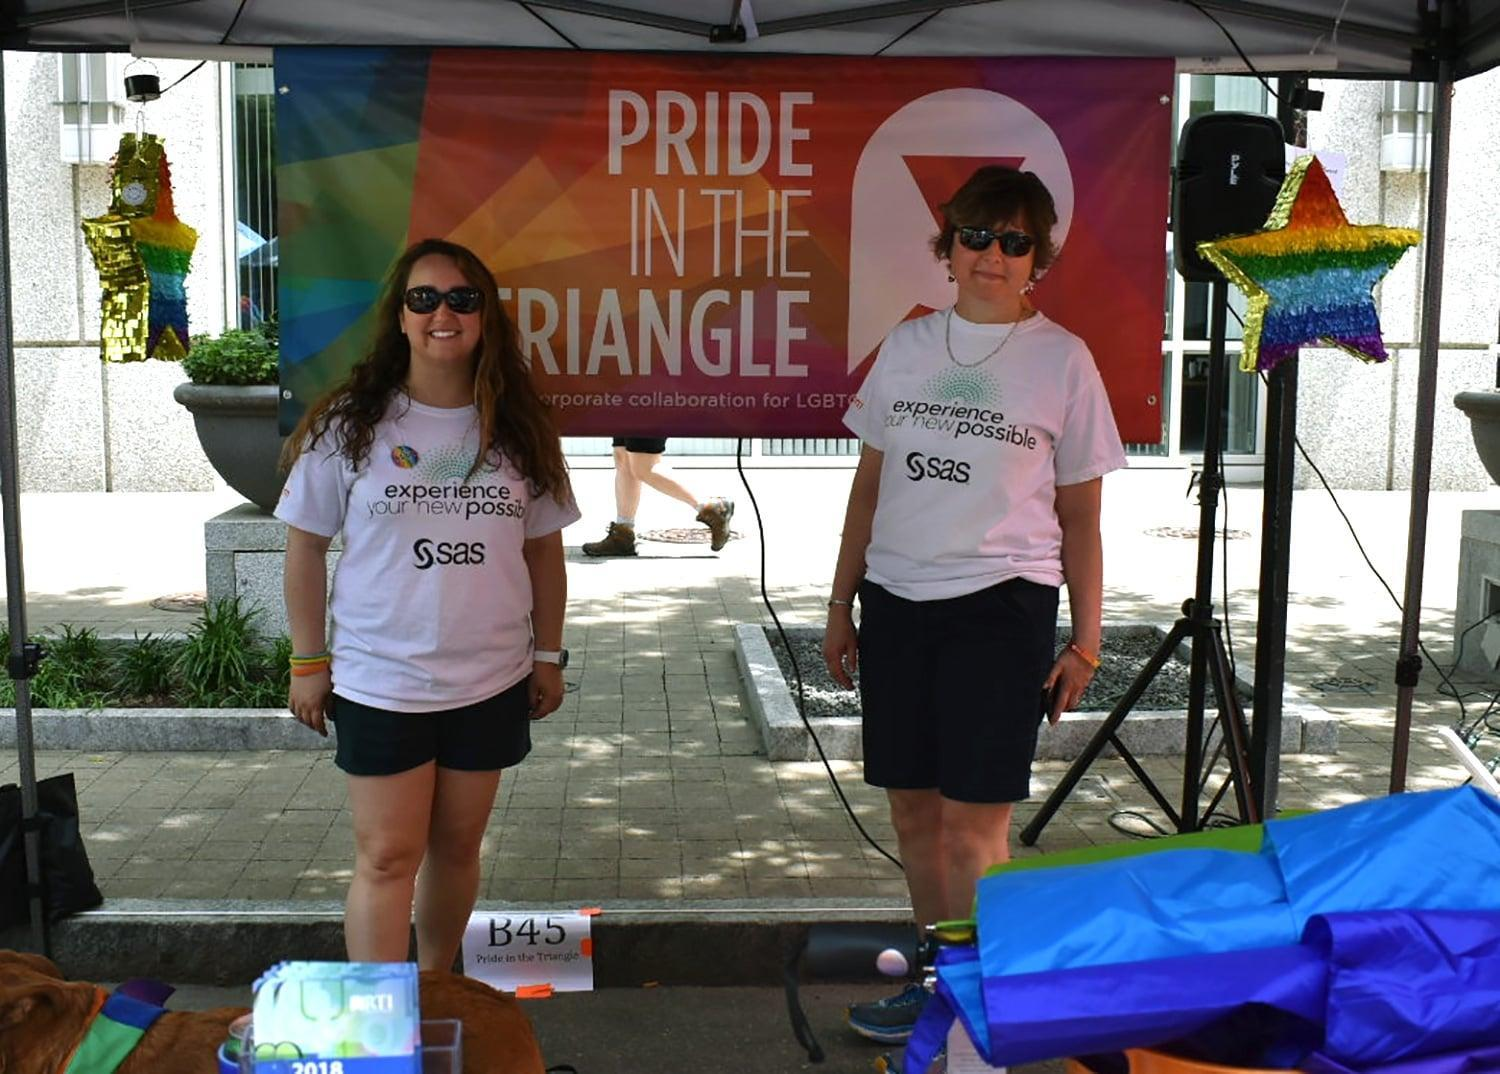 SAS employees at Pride in the Triangle